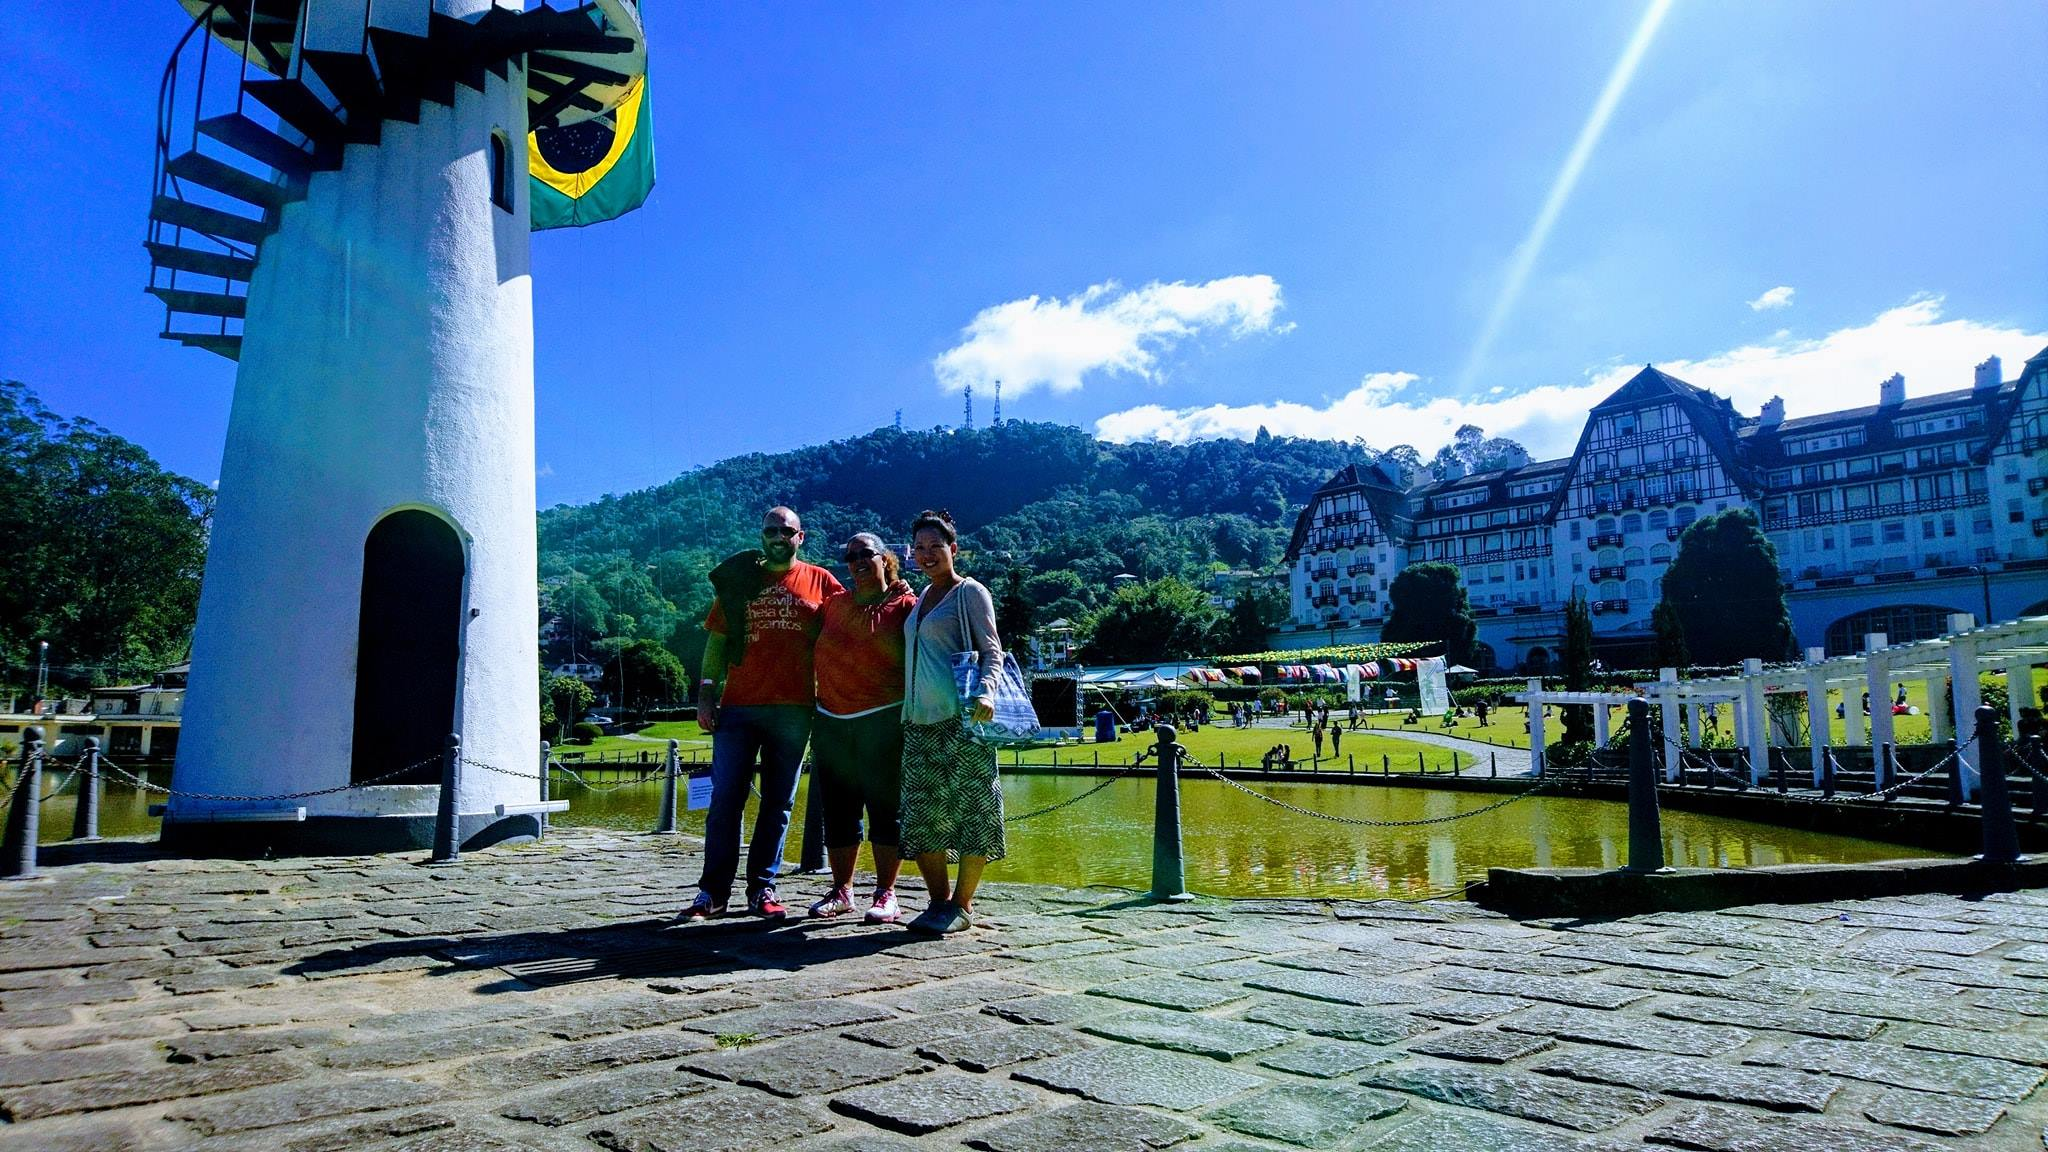 Sunny day in Petropolis.